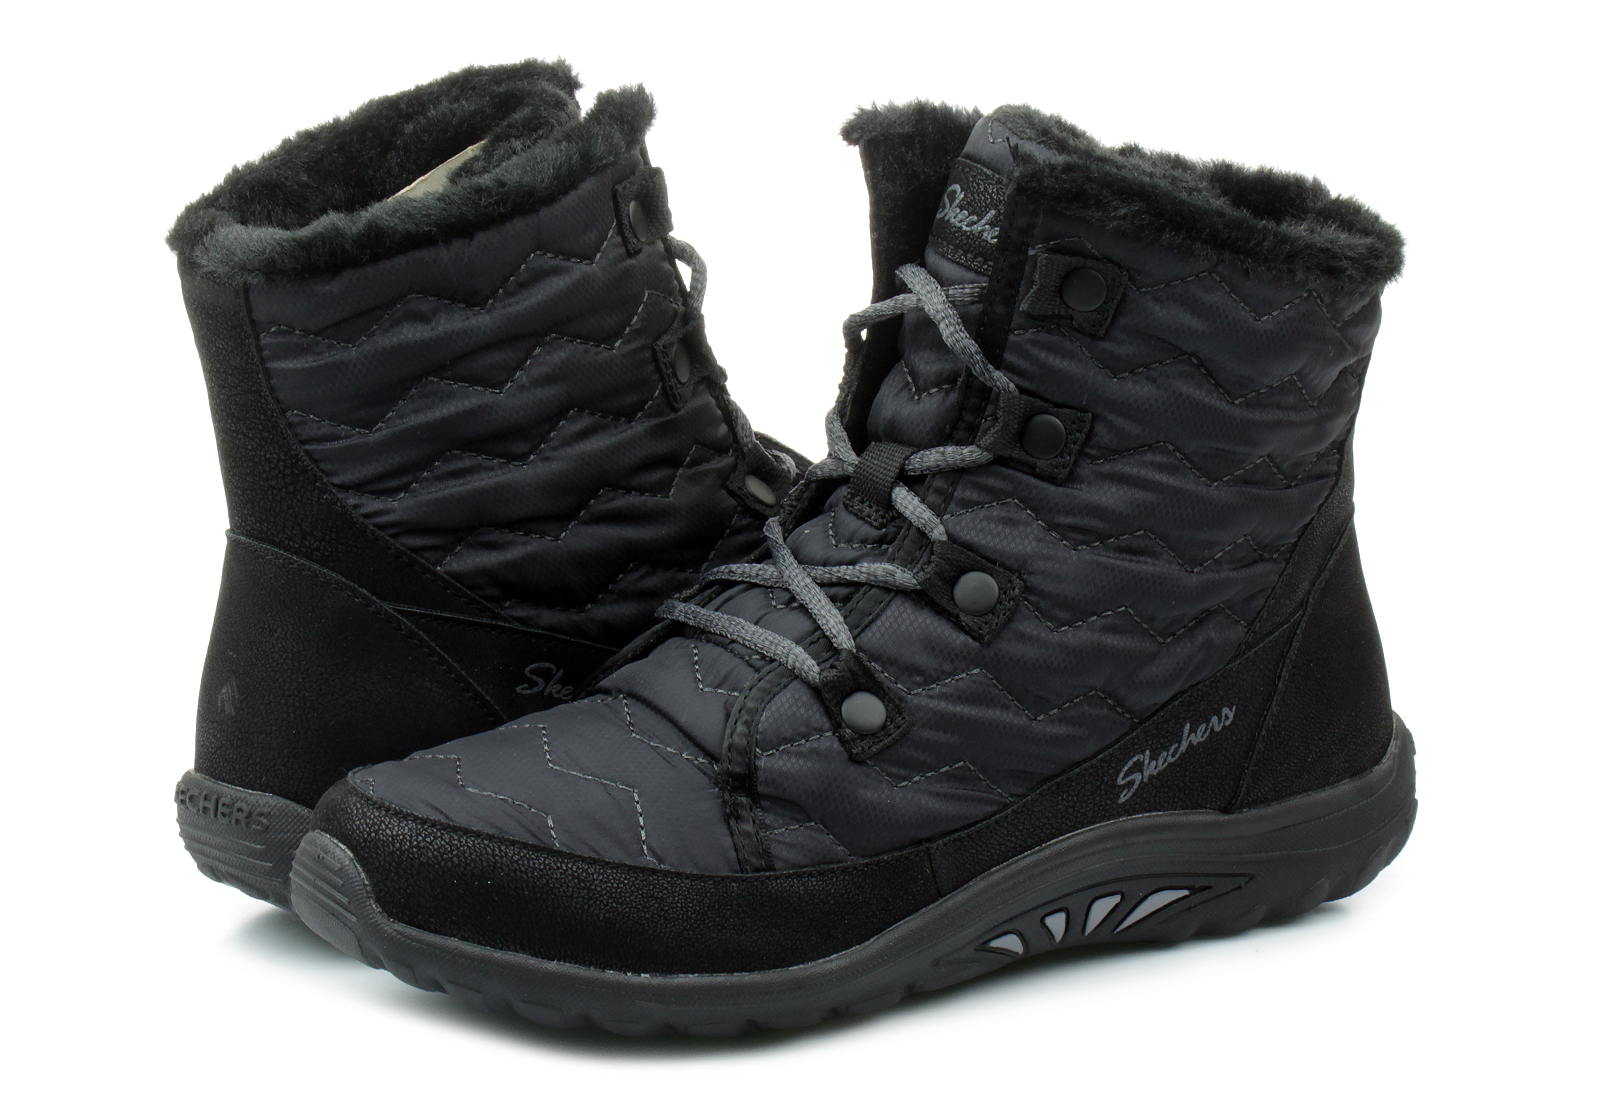 The number one comment from our testers was that the Skechers GoWalk sneakers were